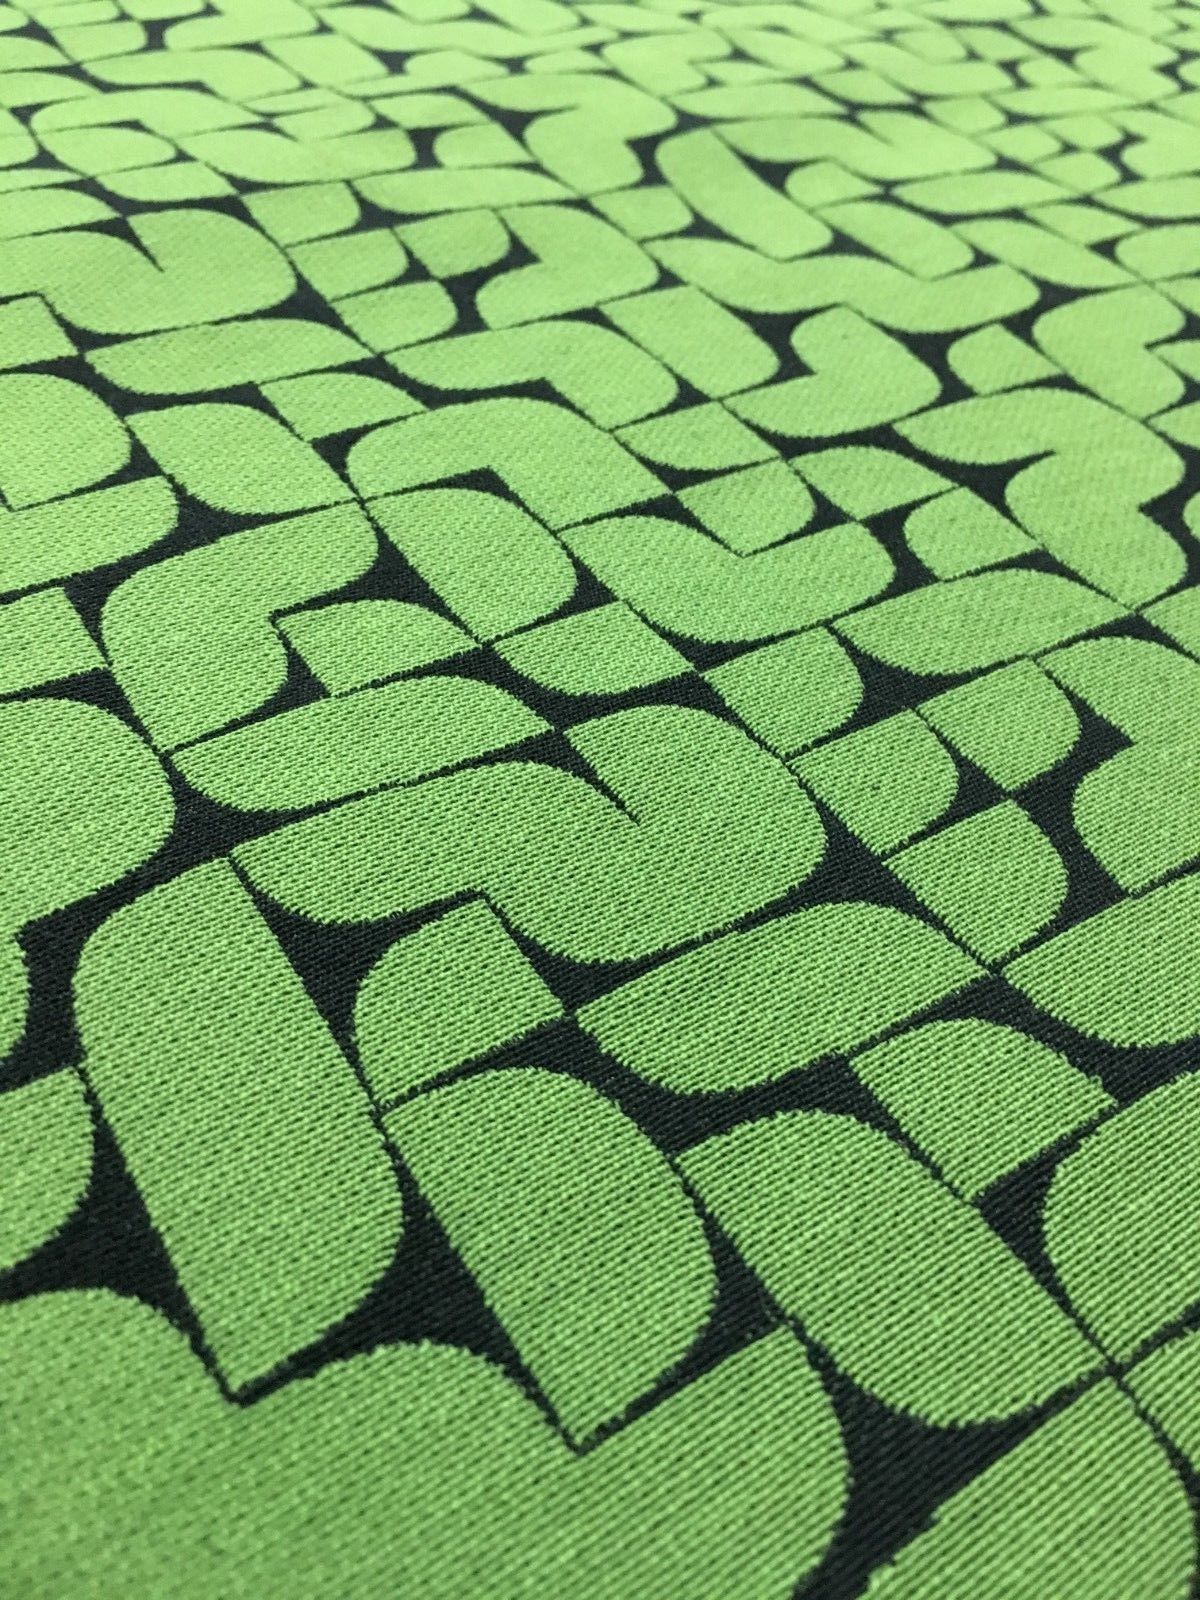 Mid Century Upholstery Fabric Geometric Green and Black 6.125 yds PE